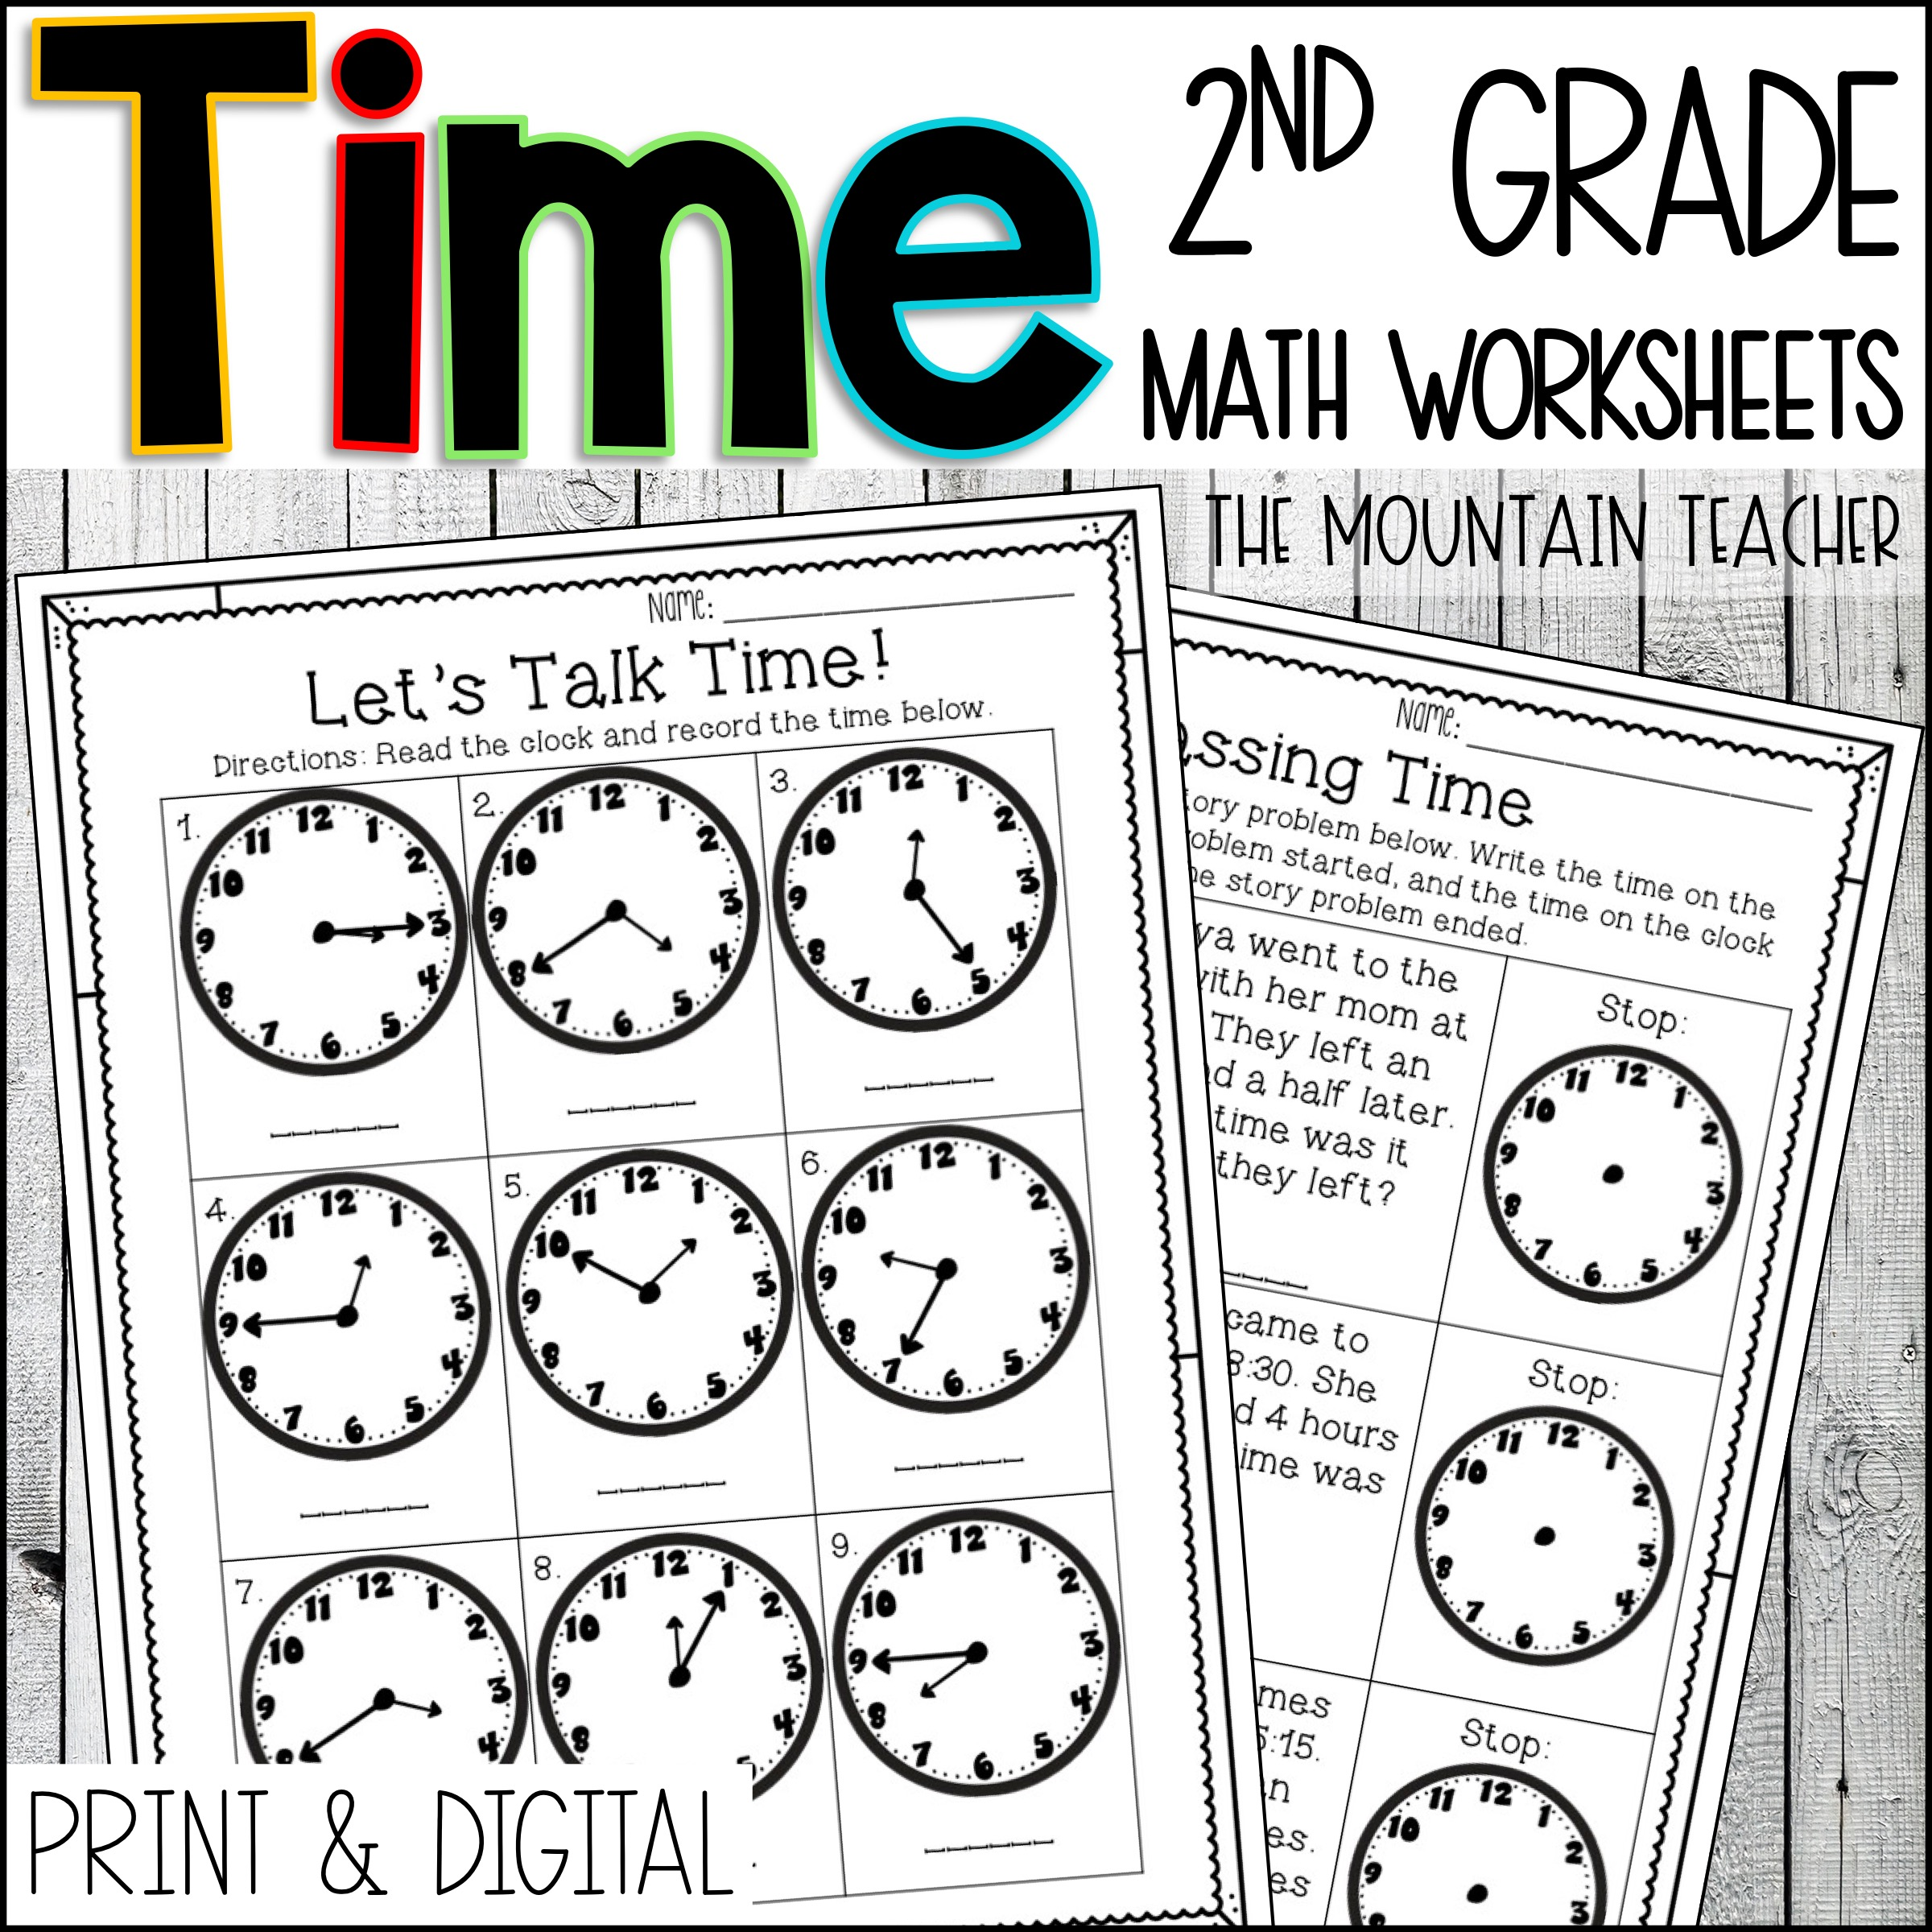 Telling Time to 5 Minutes Worksheets for 2nd Grade By The Mountain Teacher